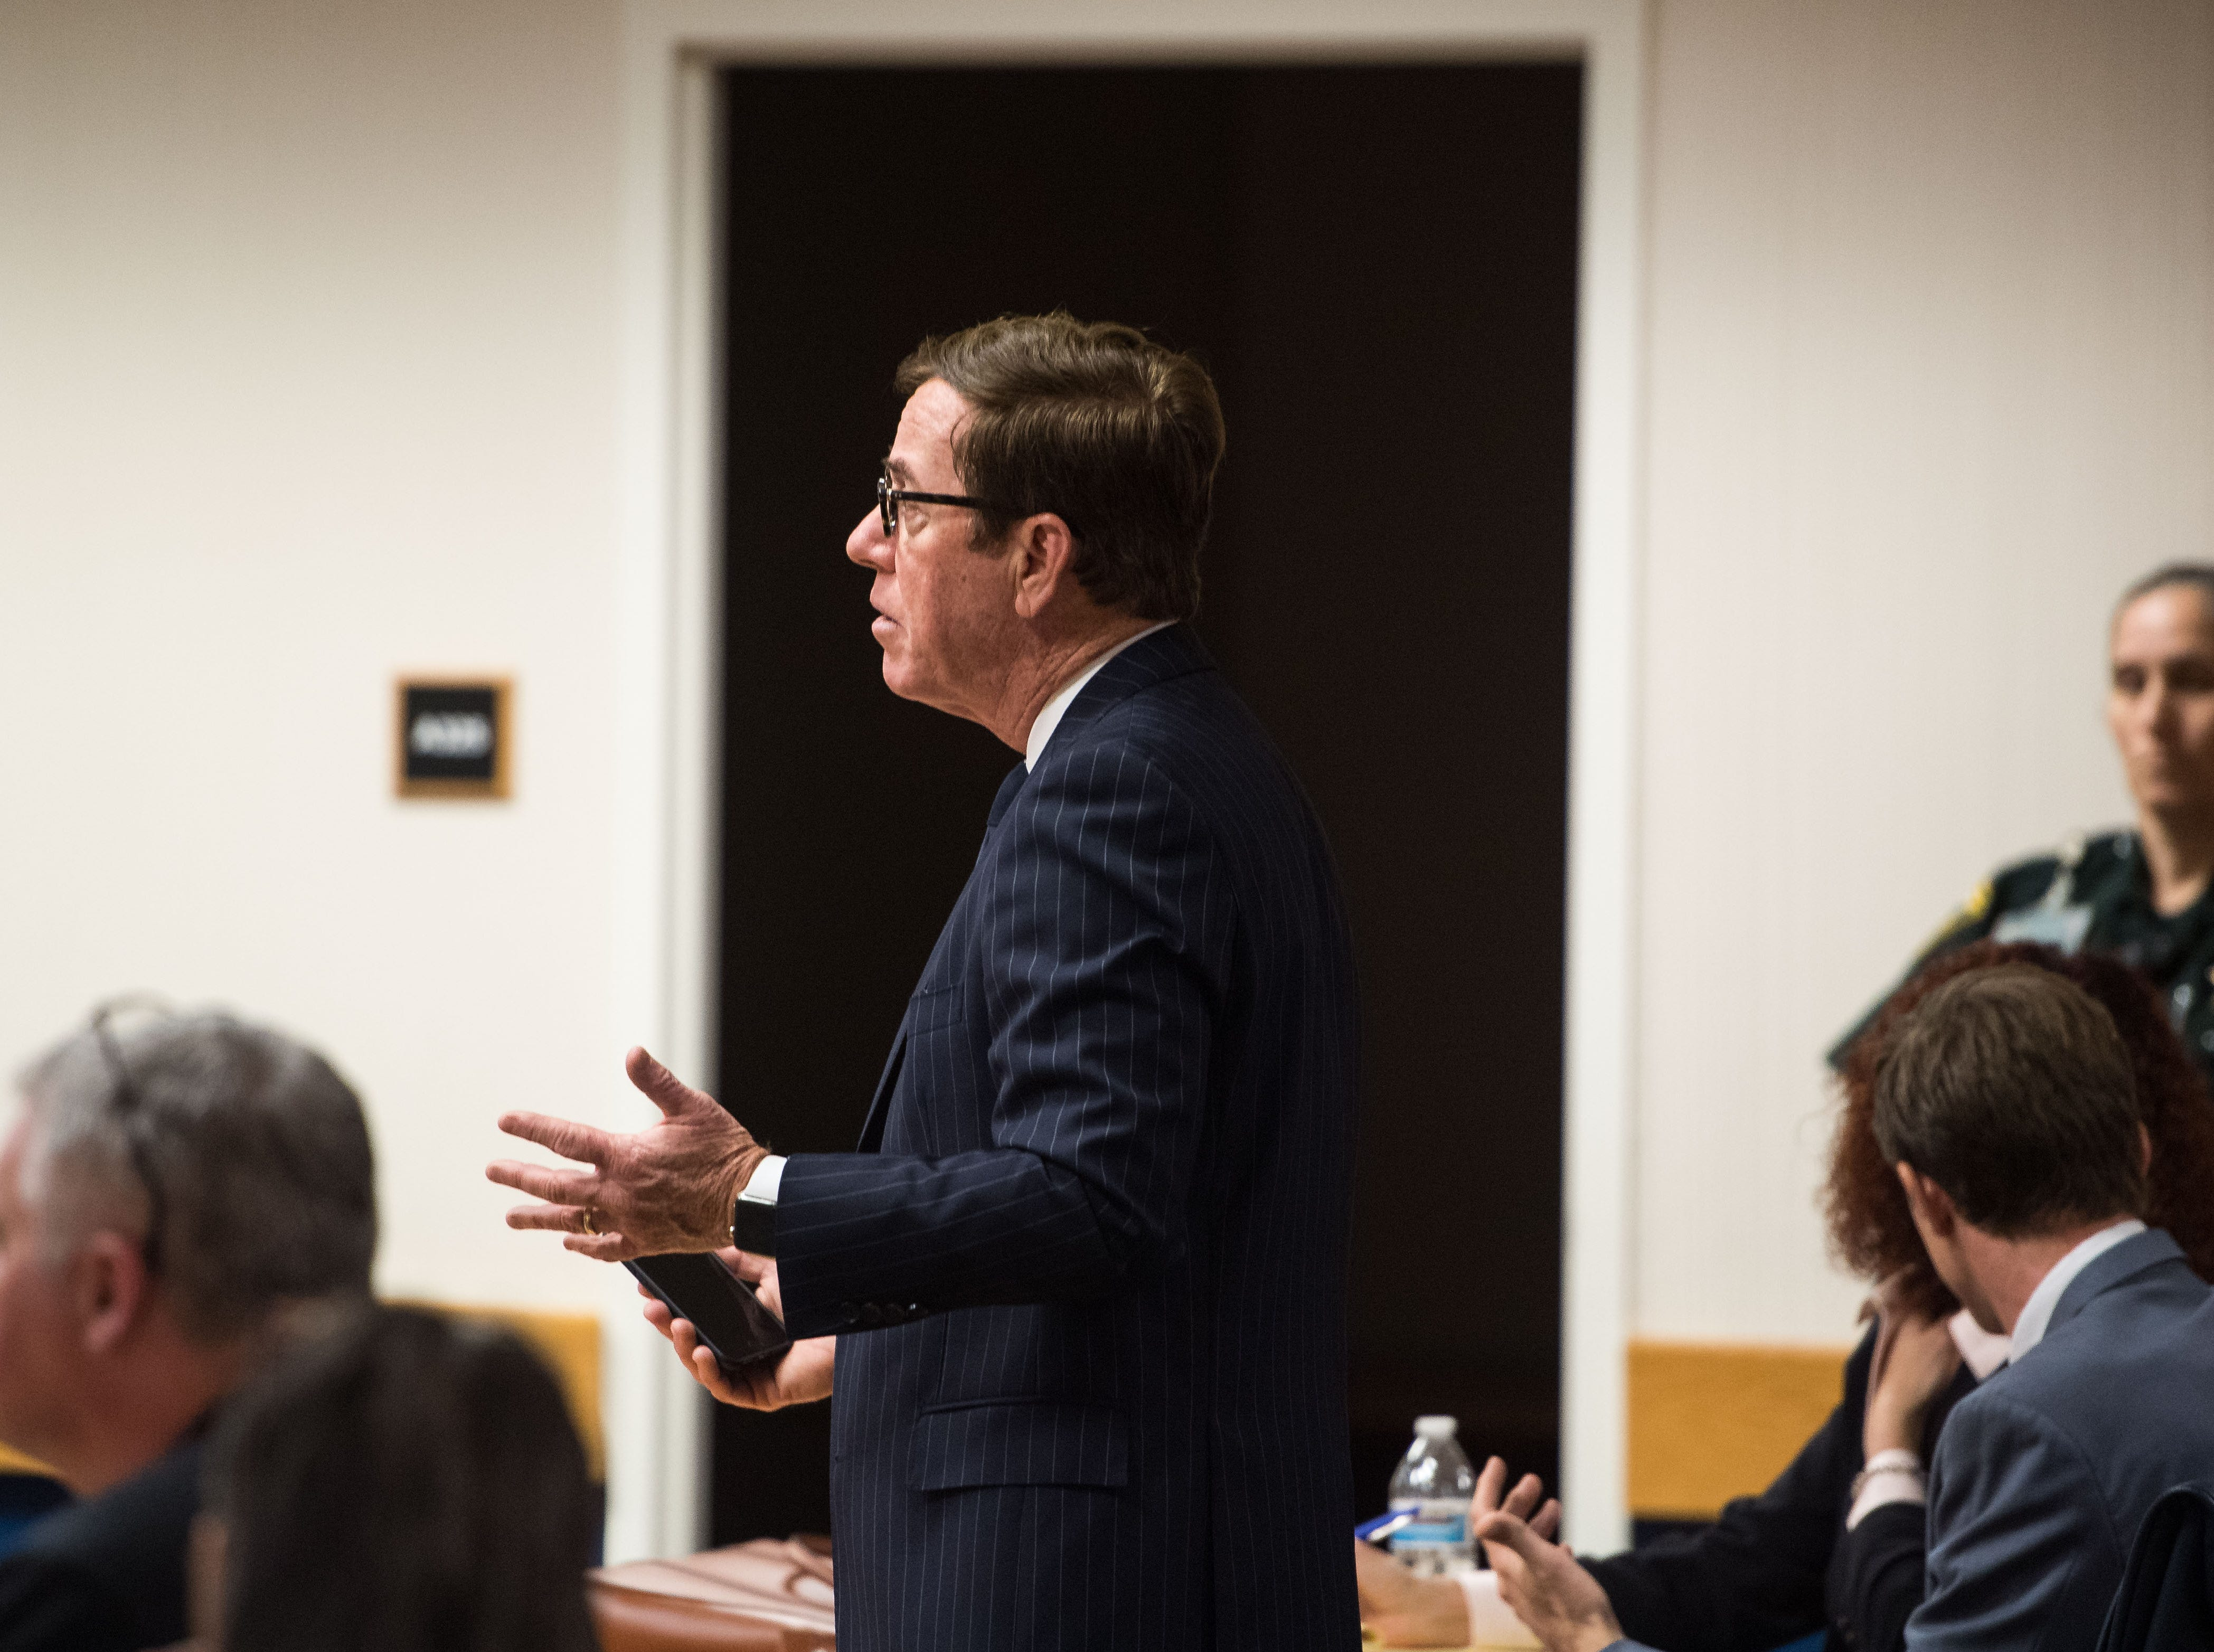 Lawyers for the defense of Austin Harrouff and the state prosecution appear before Judge Sherwood Bauer for a status hearing Wednesday, Feb. 6, 2019, at the Martin County Courthouse in Stuart.